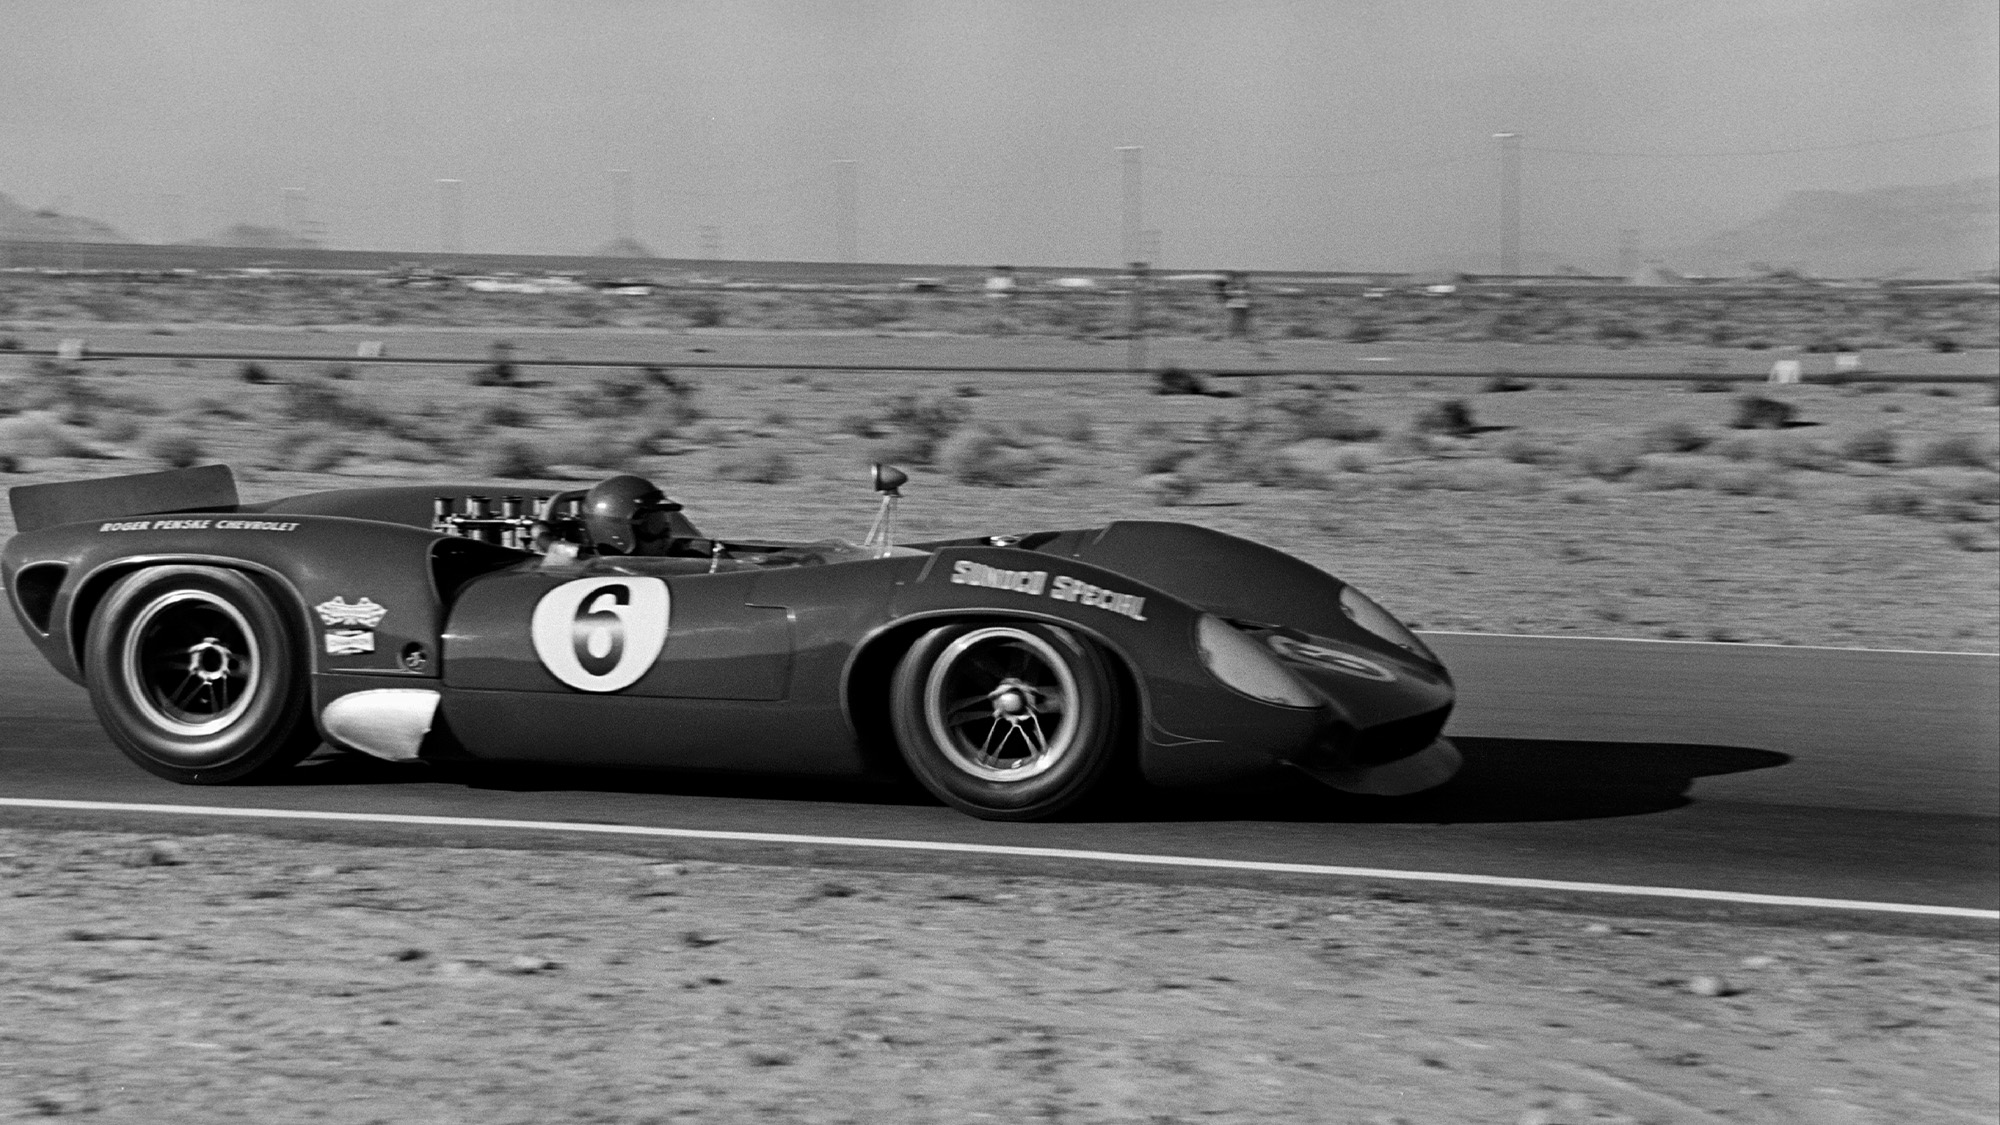 Mark Donohue at the 1966 Stardust Grand Prix in Las Vegas driving a Lola T70 Mk 2